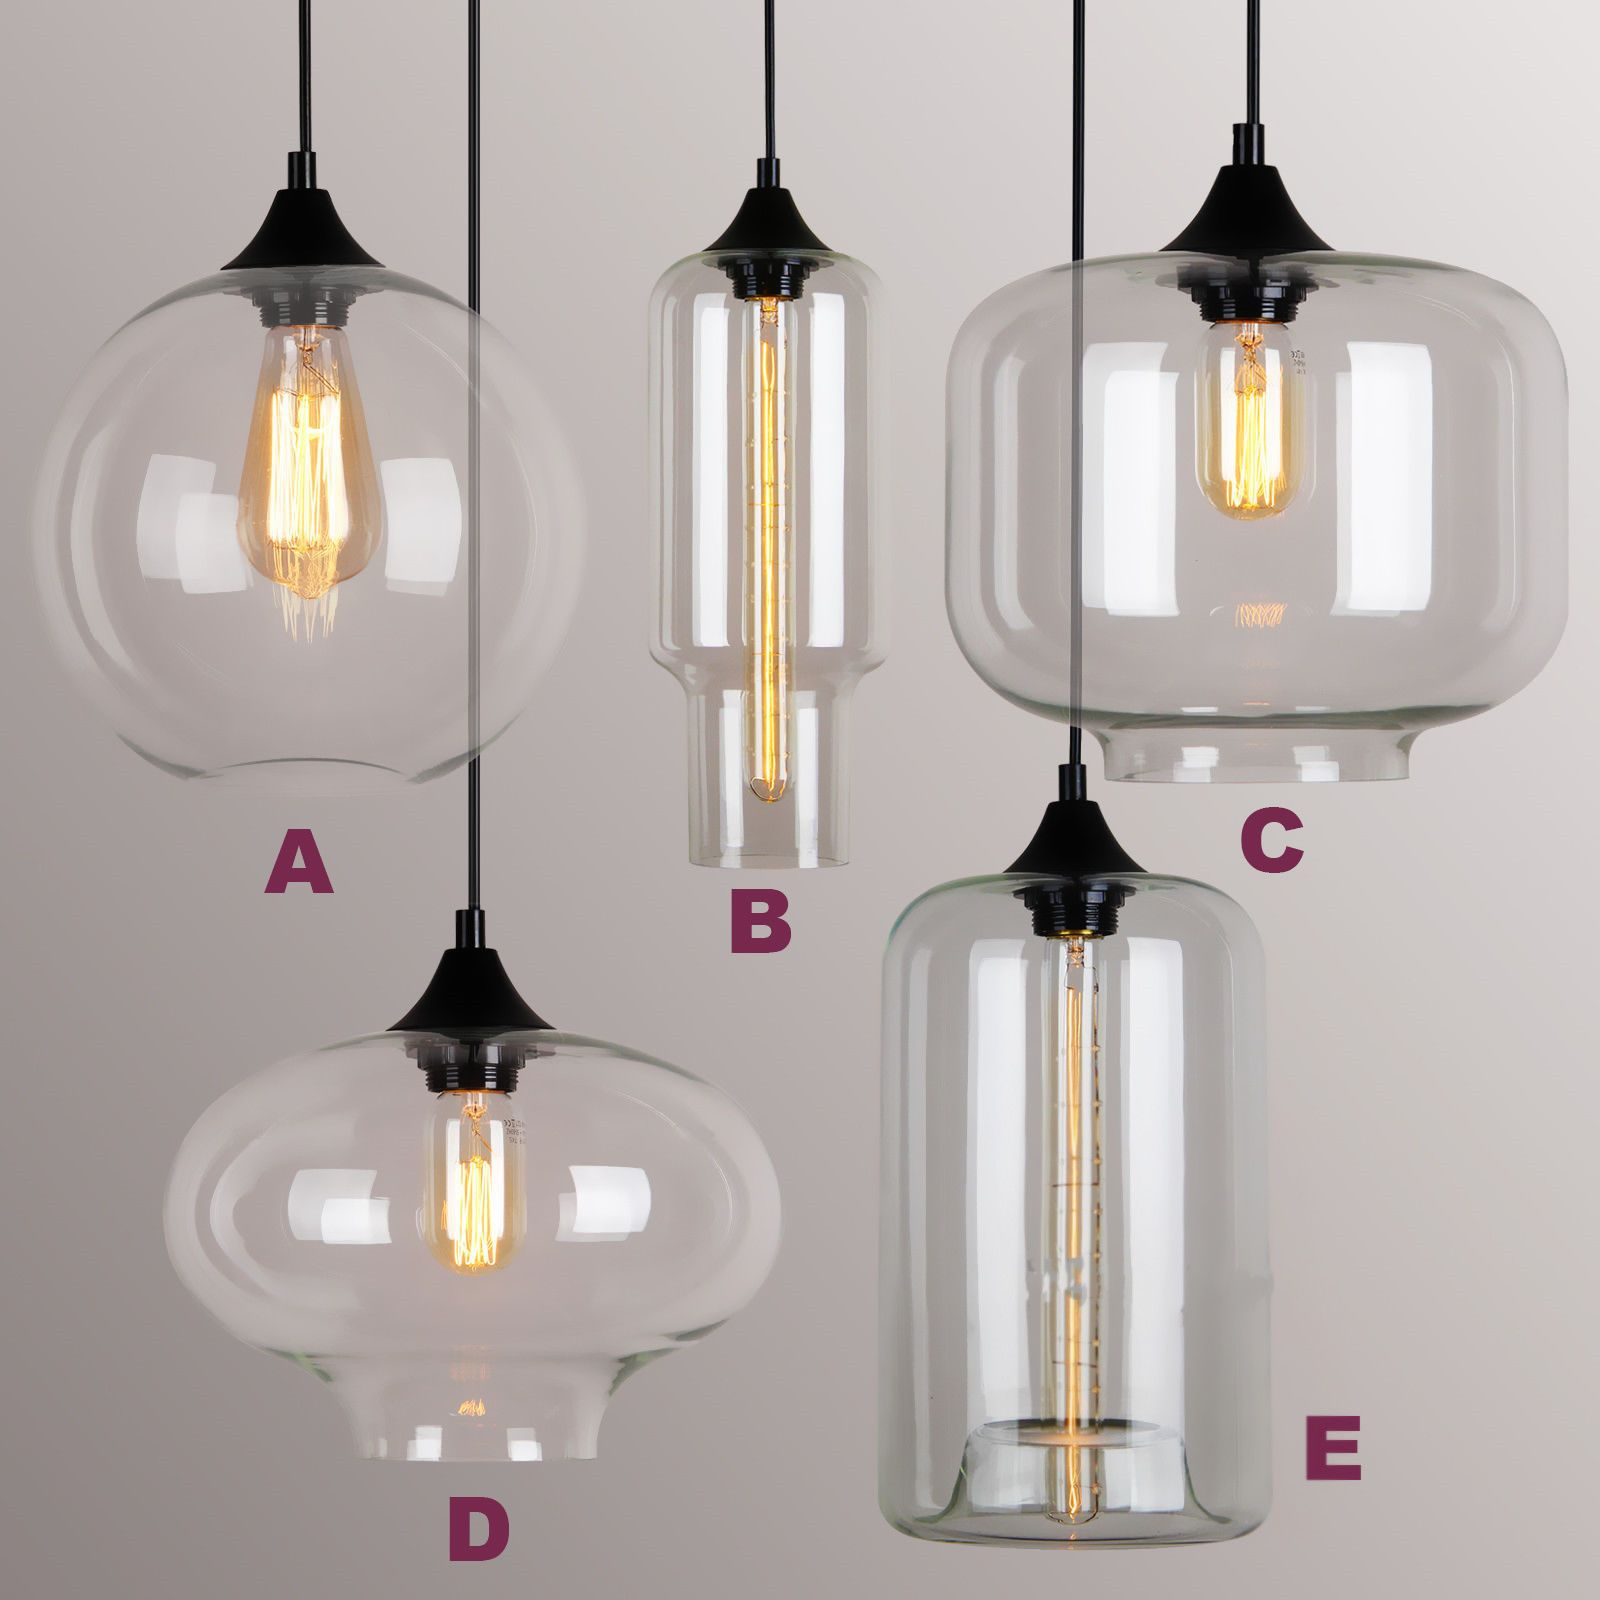 Vintage classic diy ceiling lamp light glass multi pendant vintage classic diy ceiling lamp light glass multi pendant lighting edison bulb mozeypictures Image collections